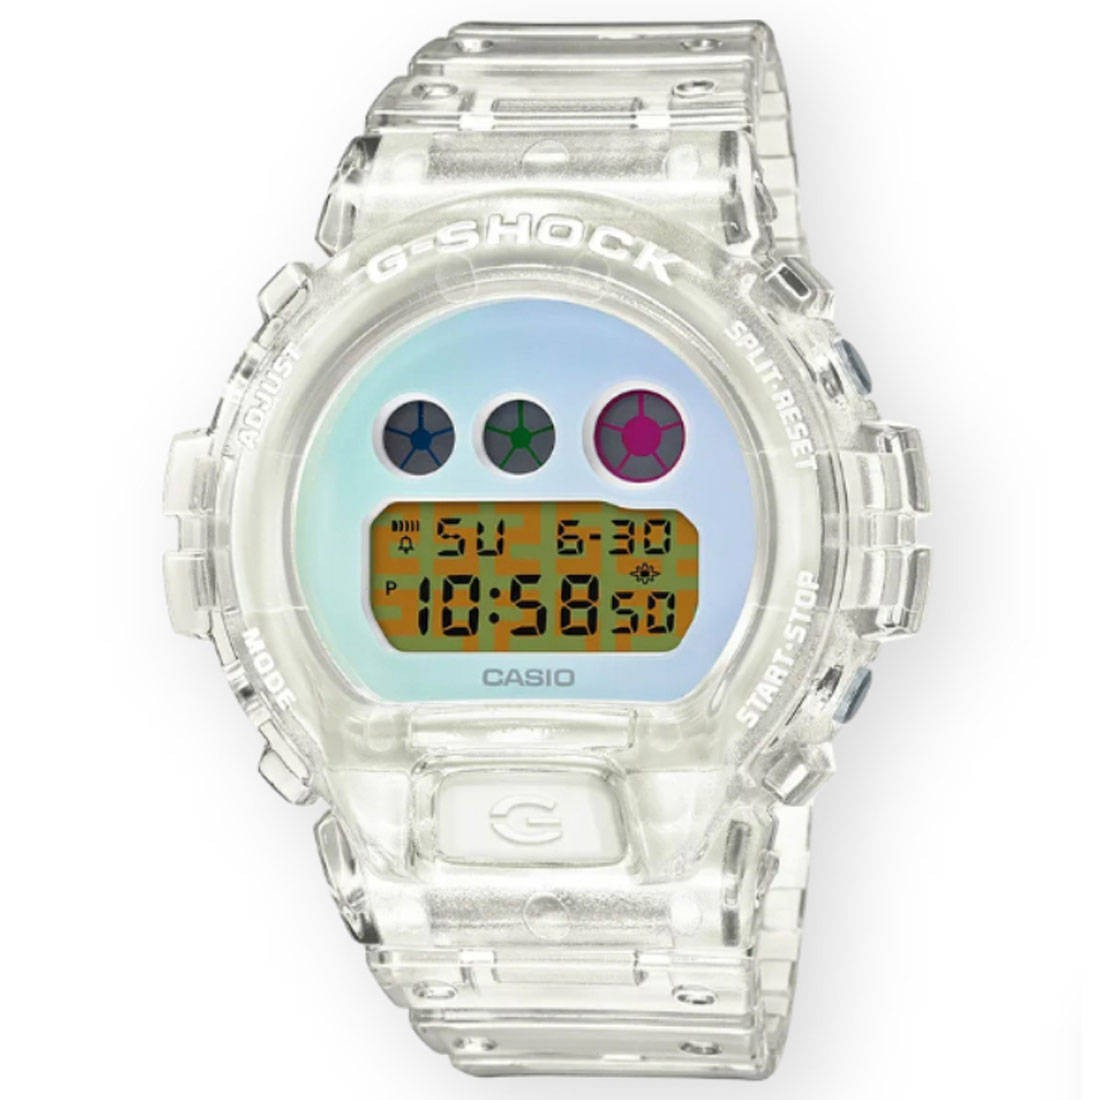 G-Shock Watches DW6900SP-1 - 25th Anniversary (white / clear)